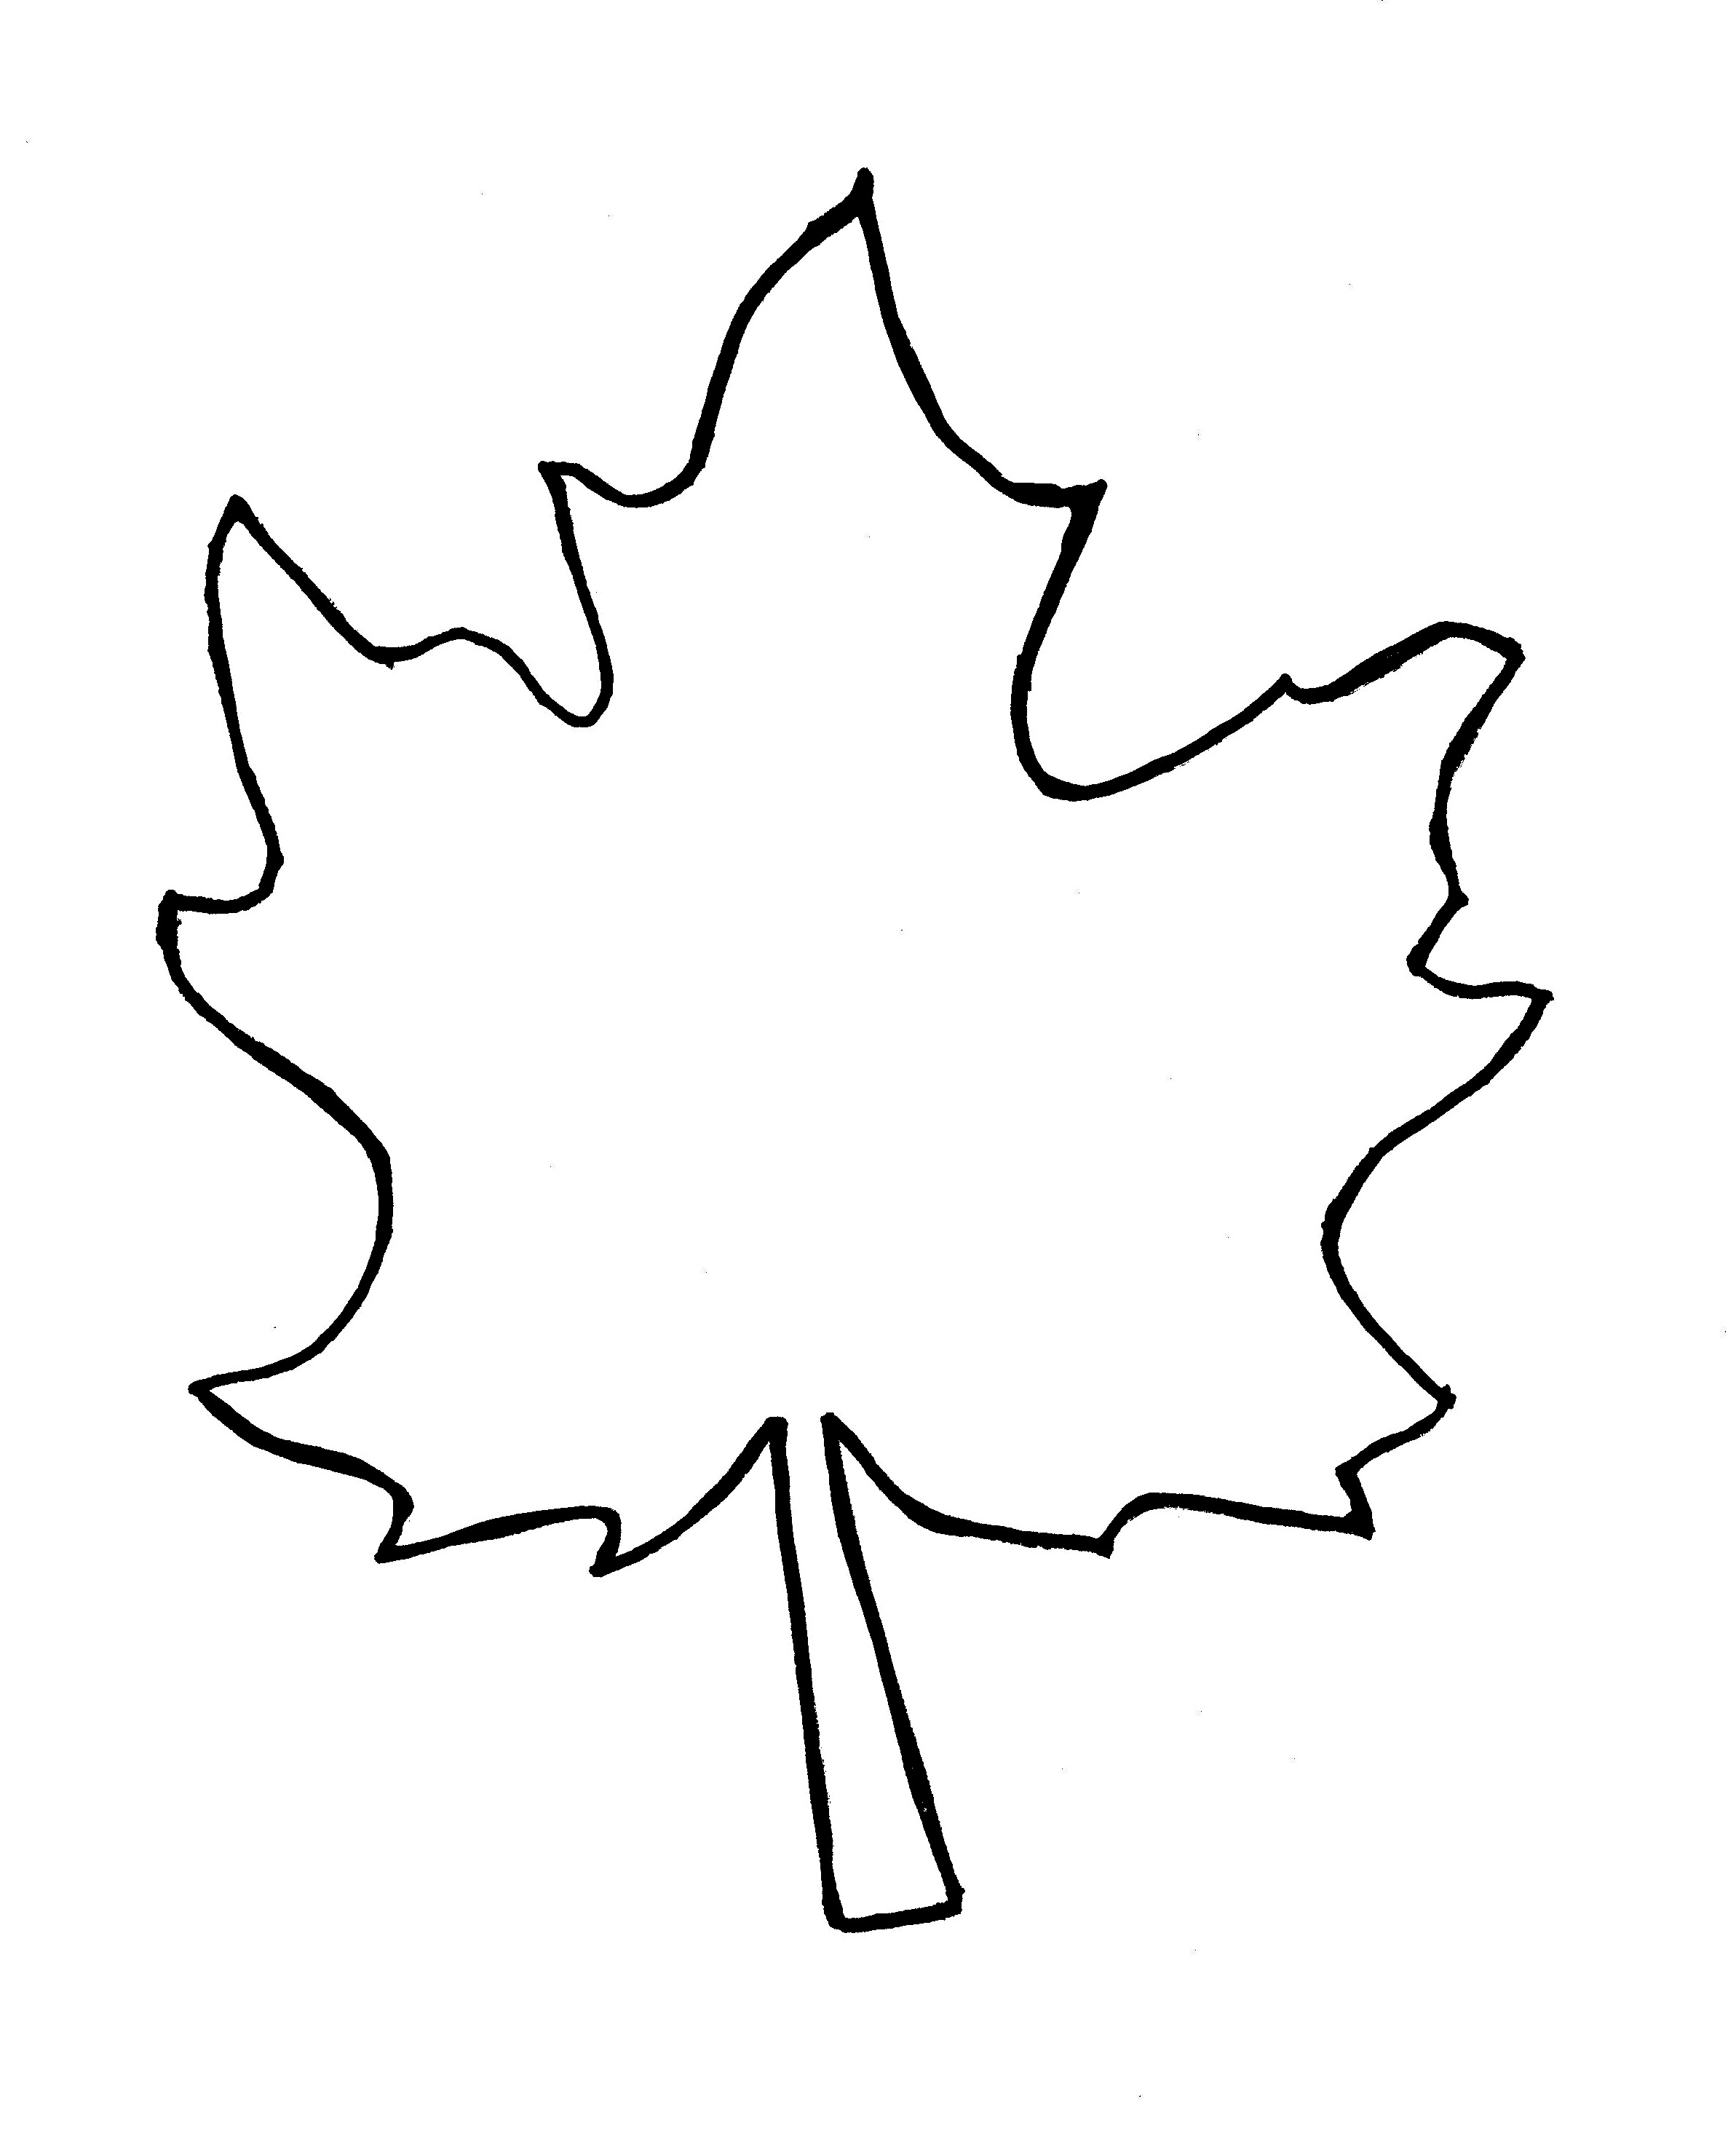 2385x2942 Leaf Leaves Clip Art Free Vector Image